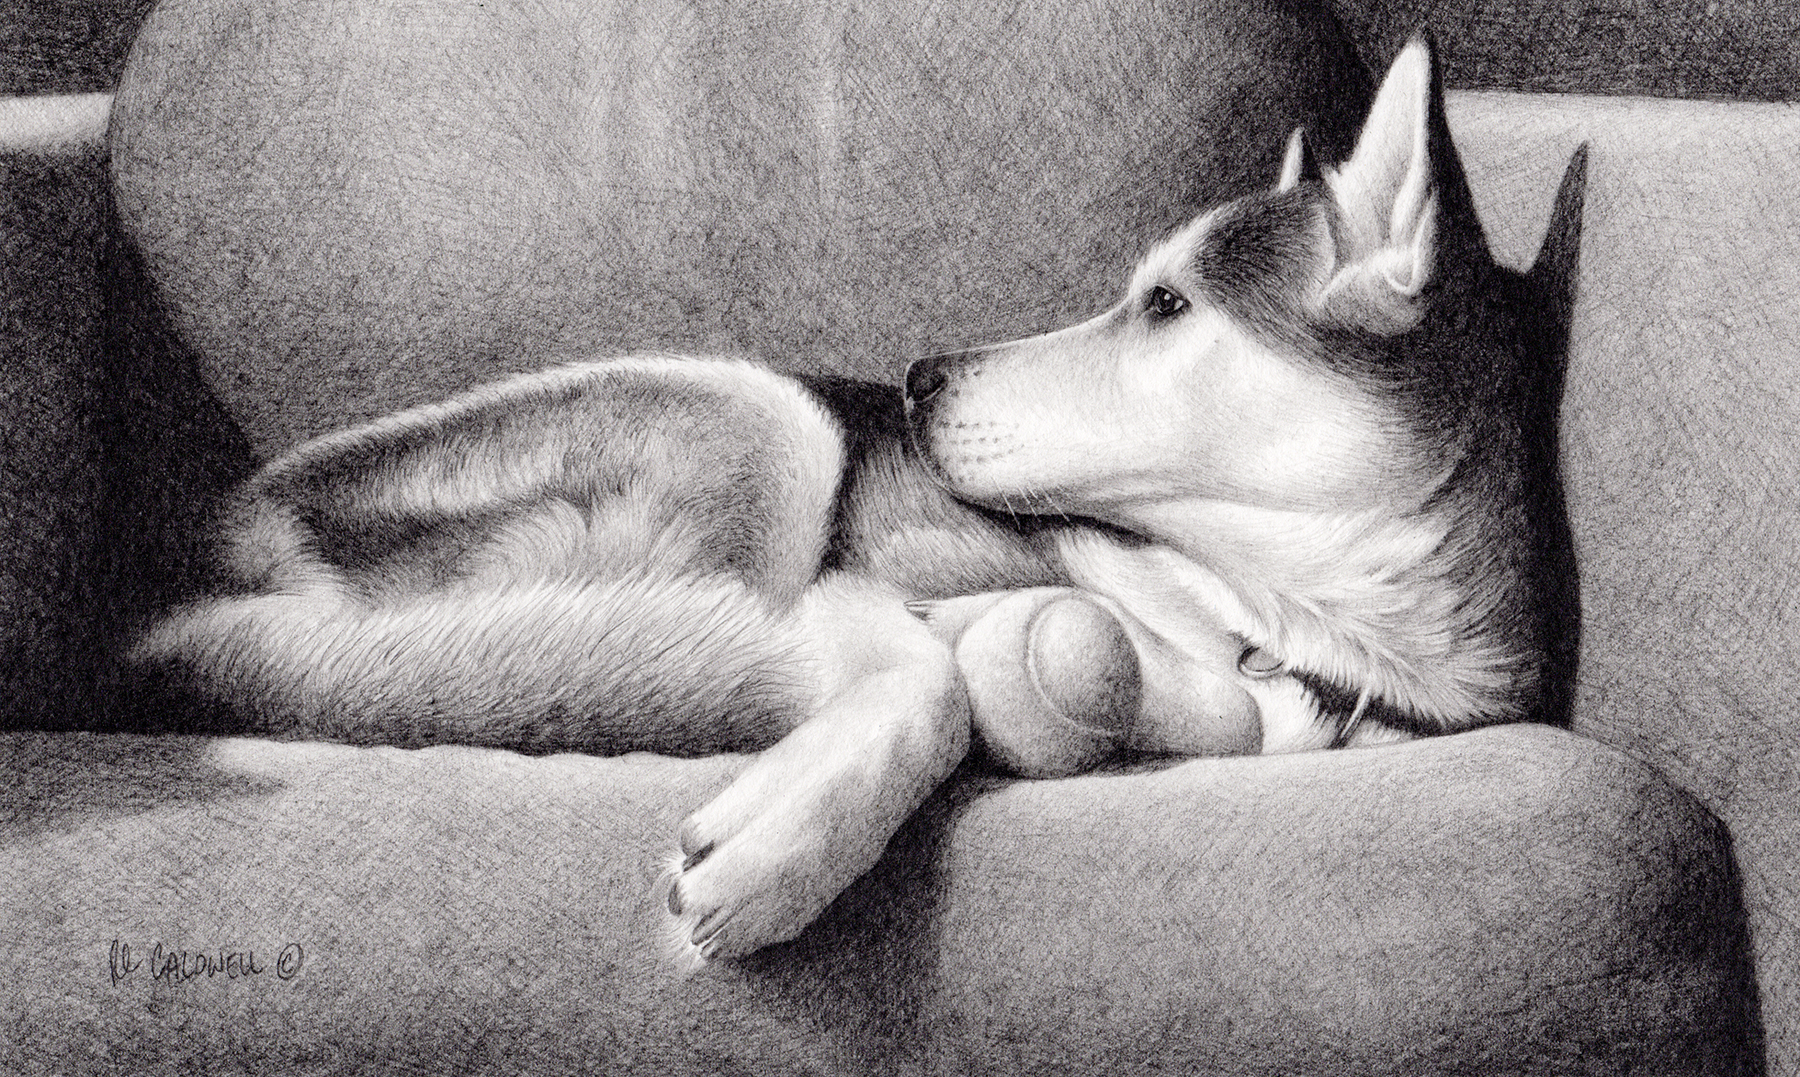 The finished graphite drawing of a dog on a sofa by artist Robert Louis Caldwell